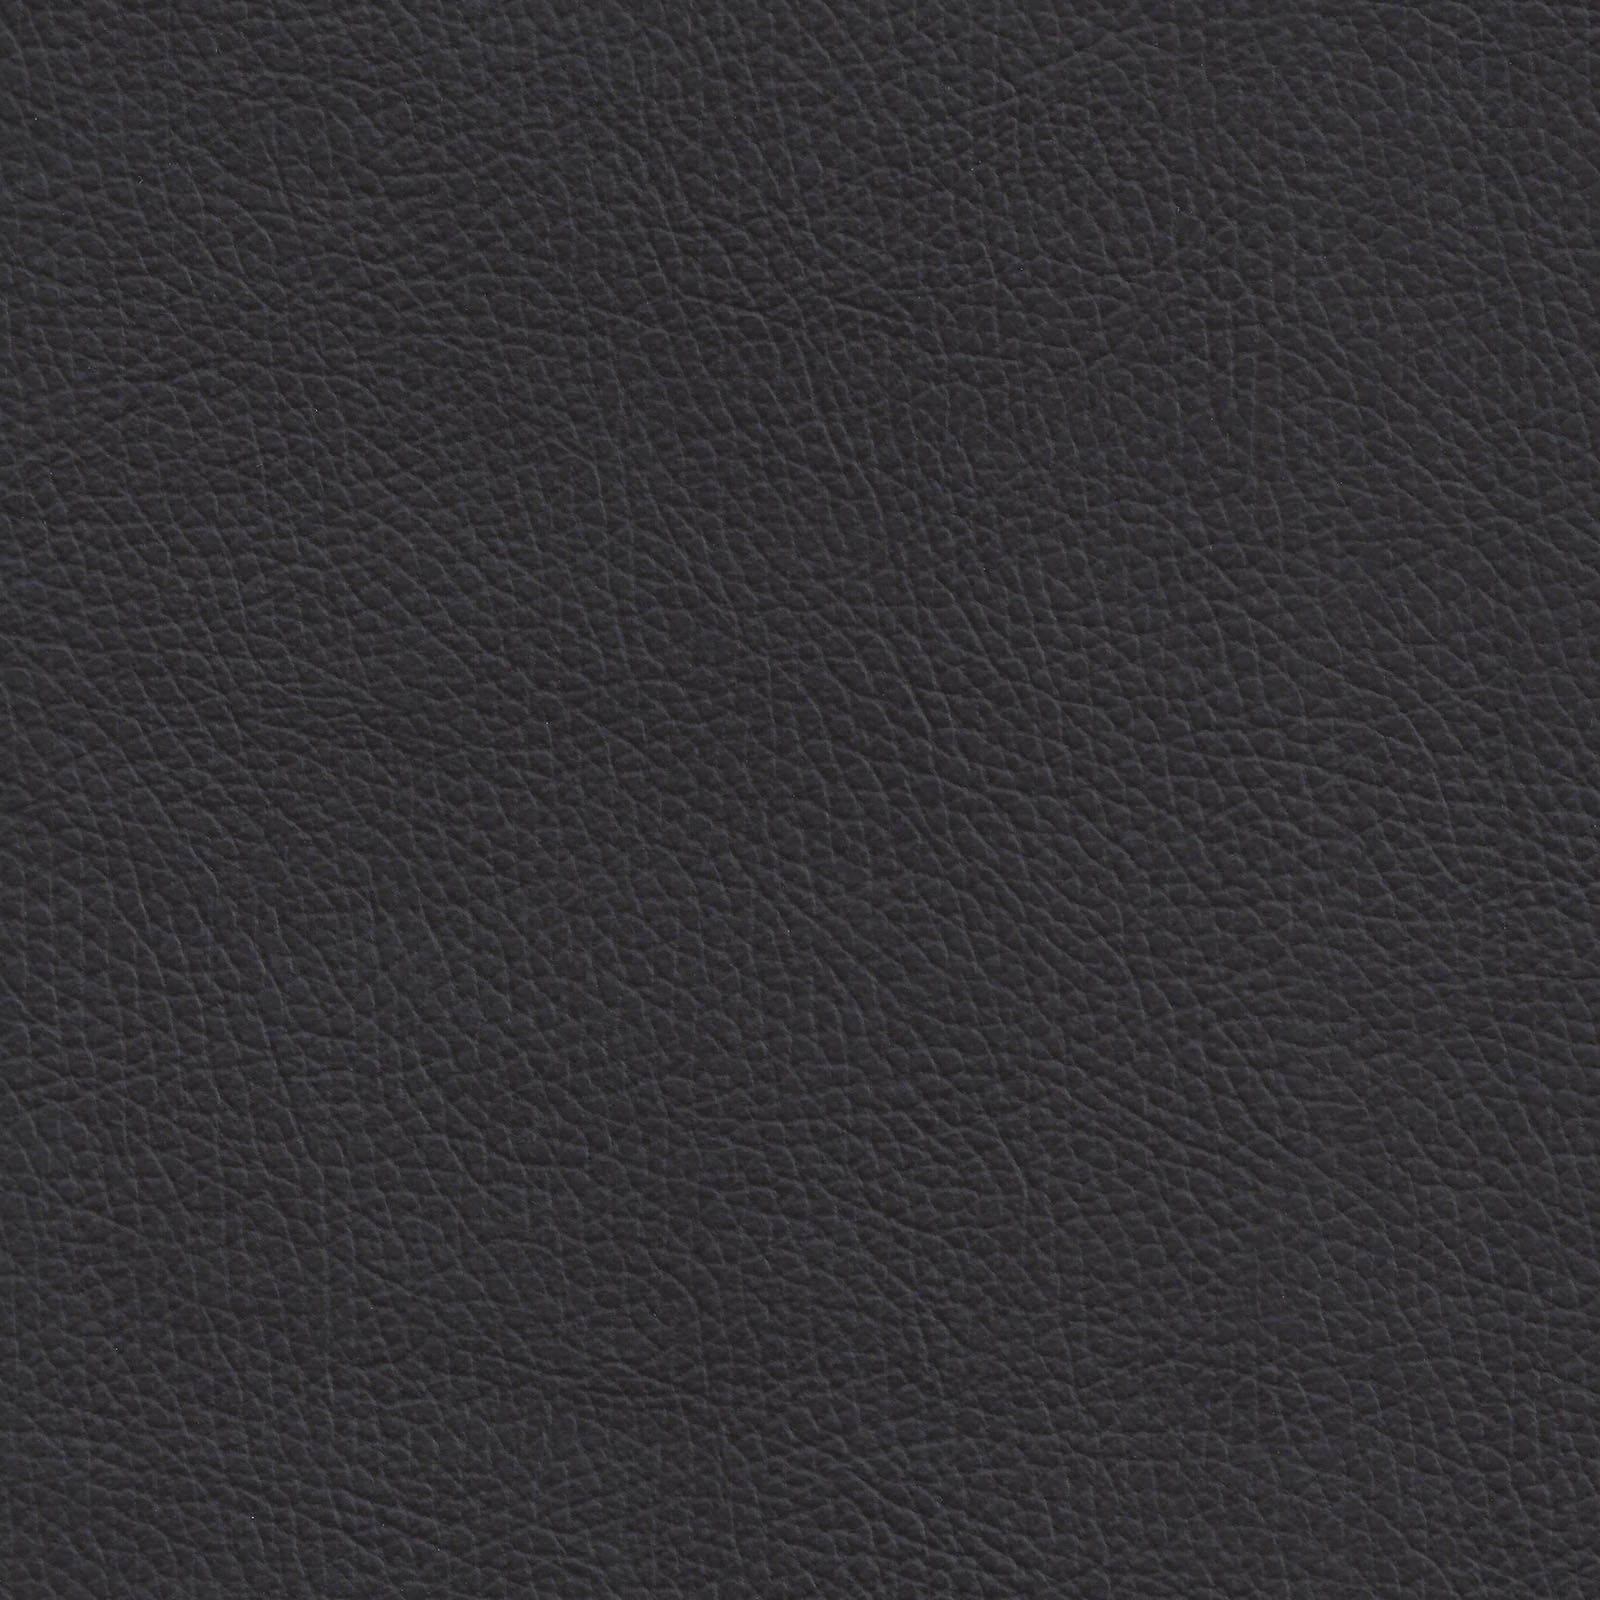 VERONA LEATHER pieces  sheets  panels various sizes Mascara  fianoleather col